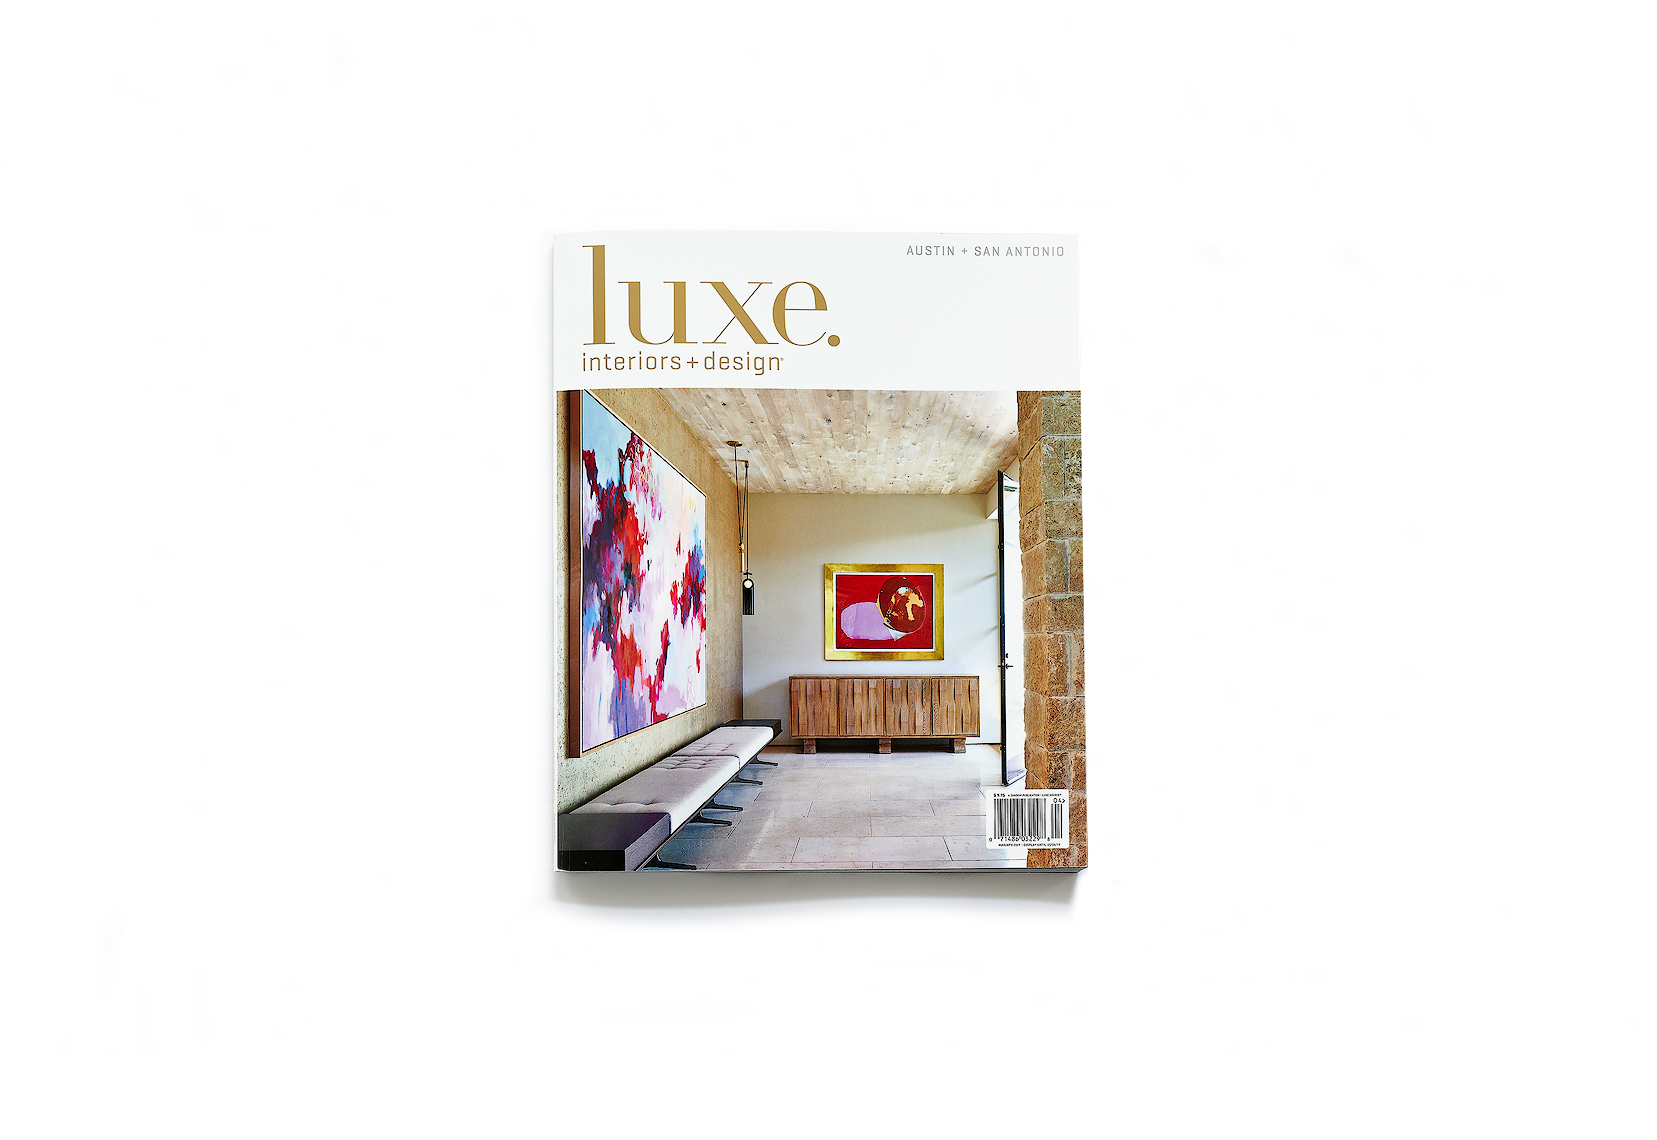 Luxe March CoverImage Dror Baldinger Photographer